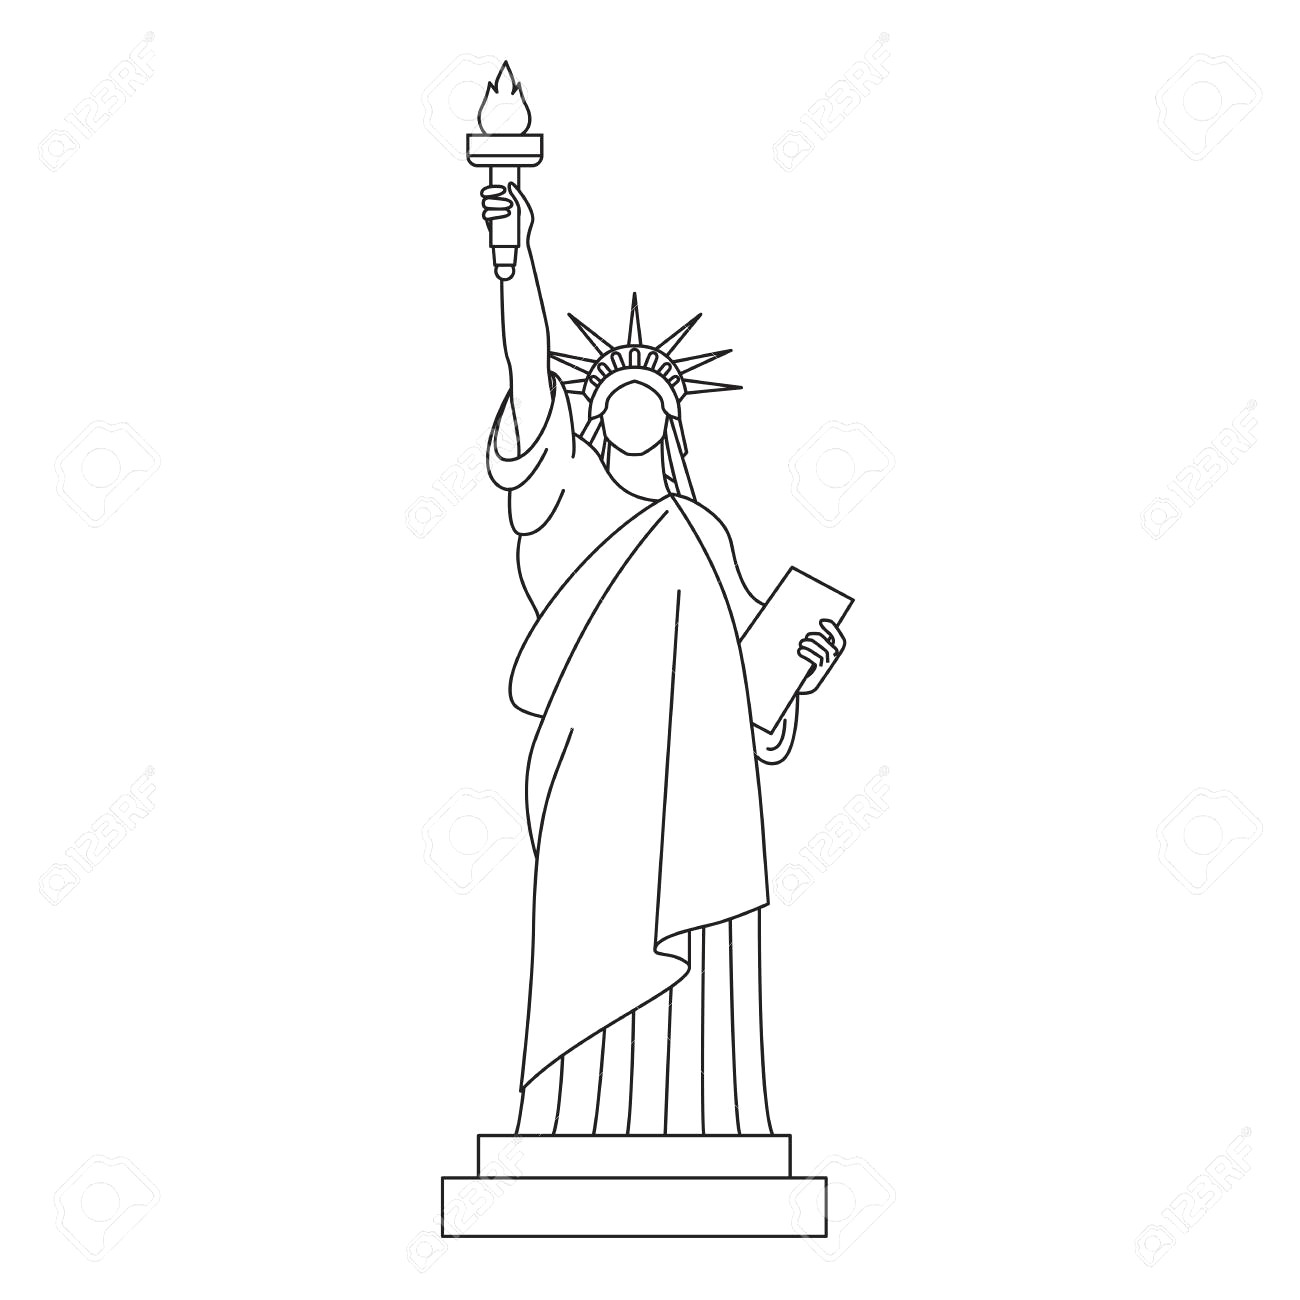 how to draw statue of liberty easy statue of liberty google search 1st grade team how to easy statue draw of liberty